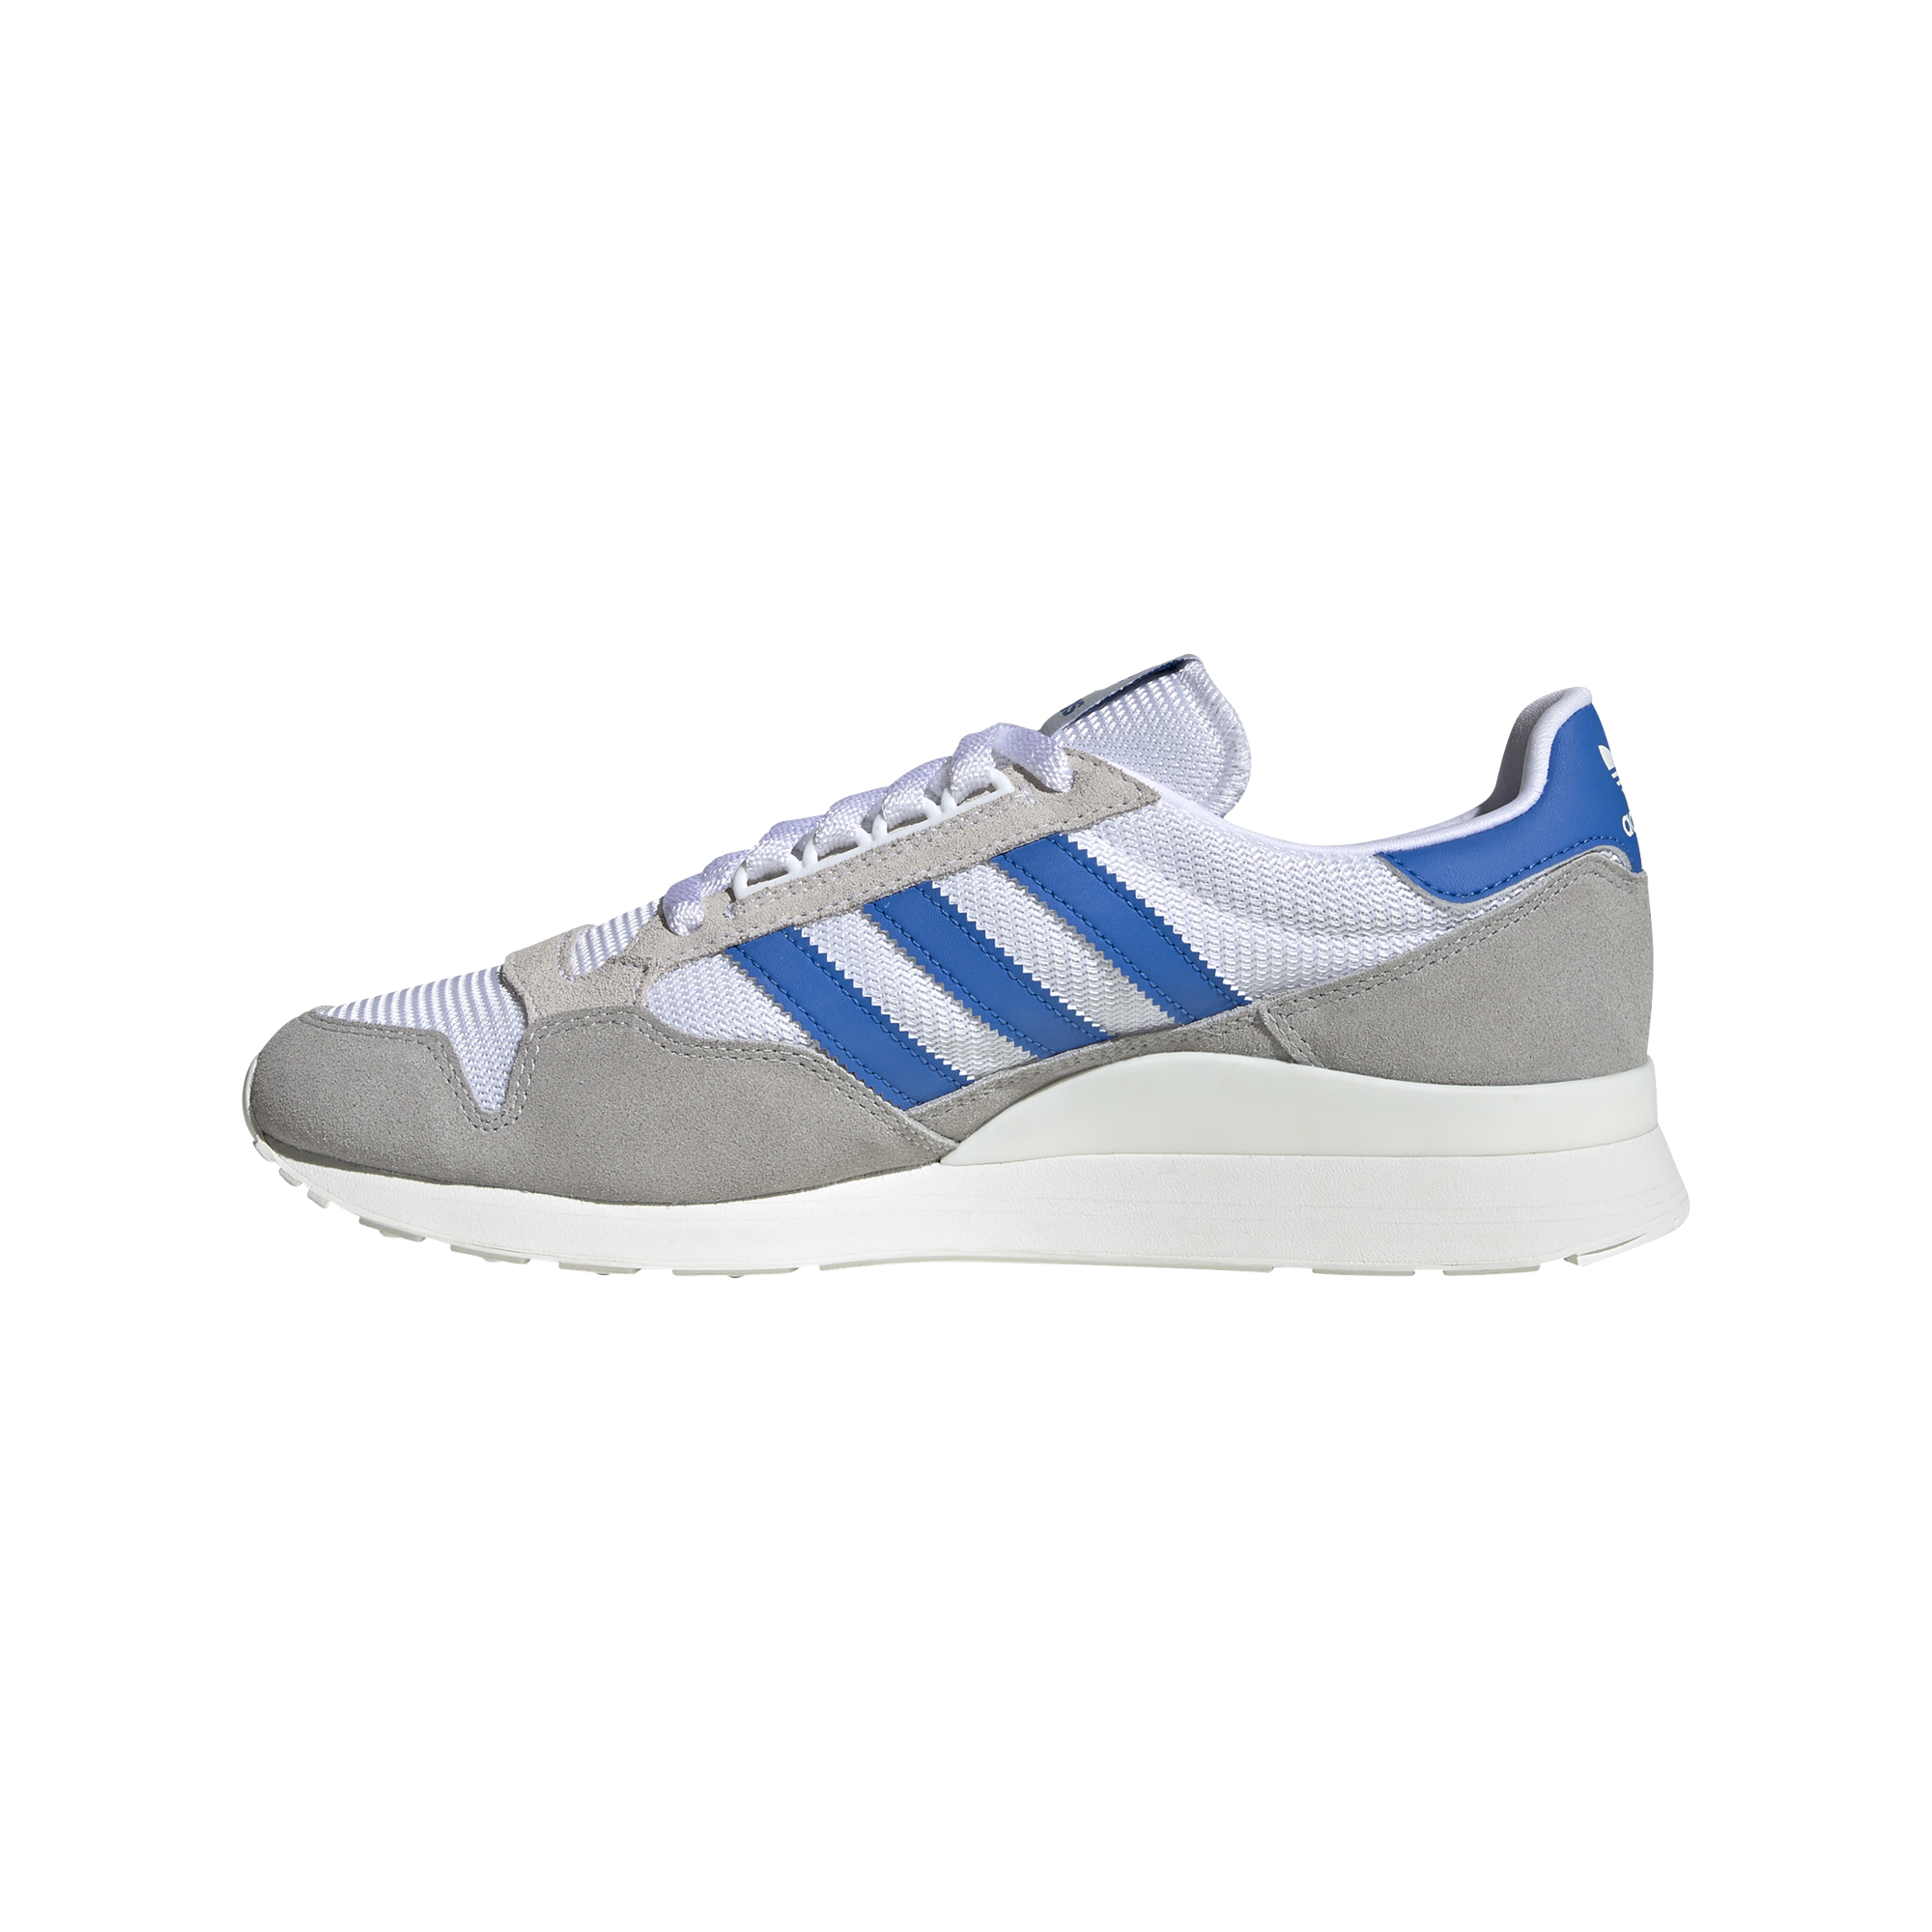 adidas ZX 500 Ftw White/ Blue Bird/ Off White FW4410